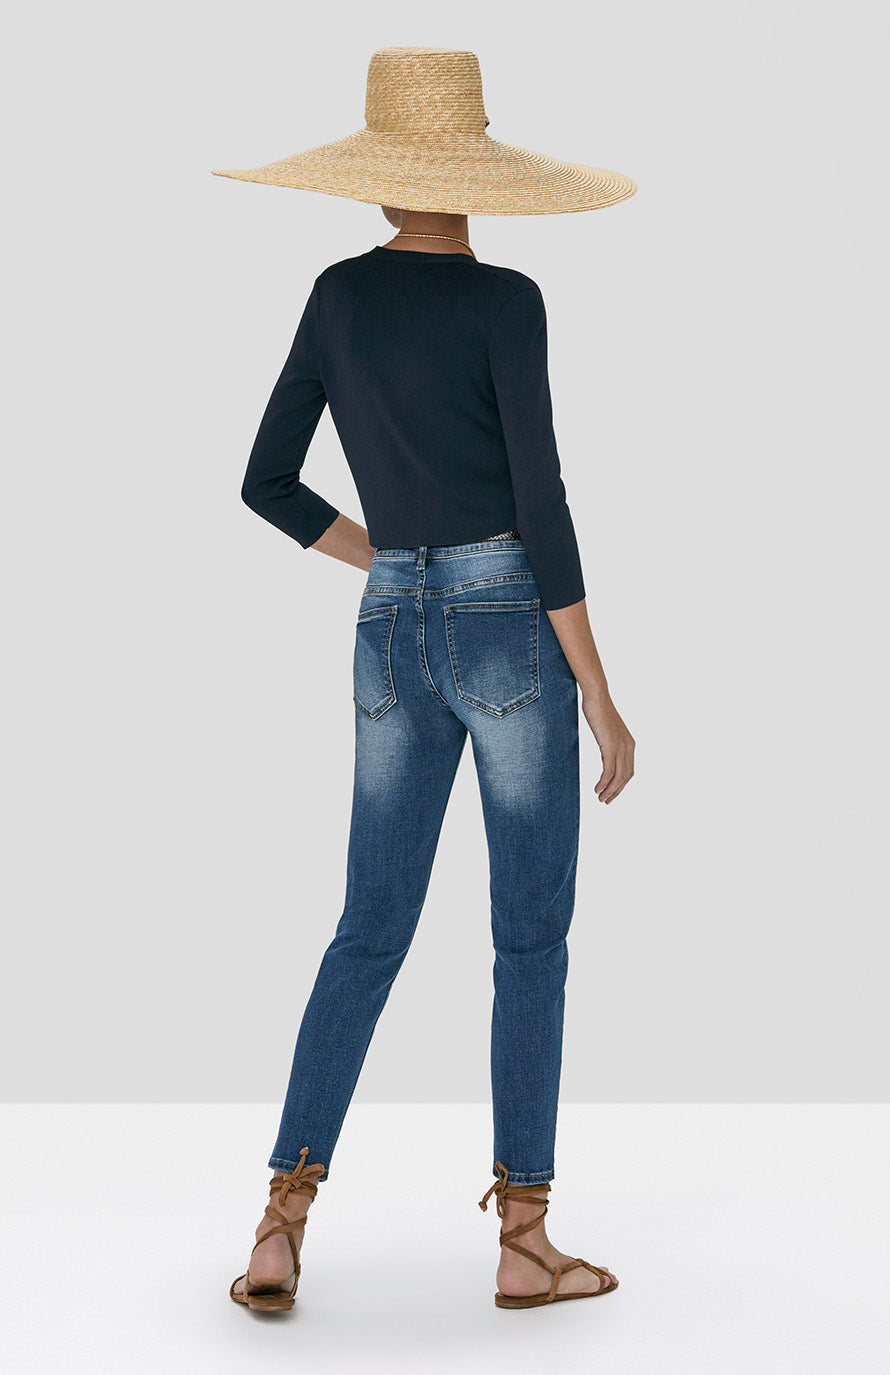 Alexis Holston Denim Pant in Indigo Denim and Petal Cardigan in Navy from Spring Summer 2020 - Rear View